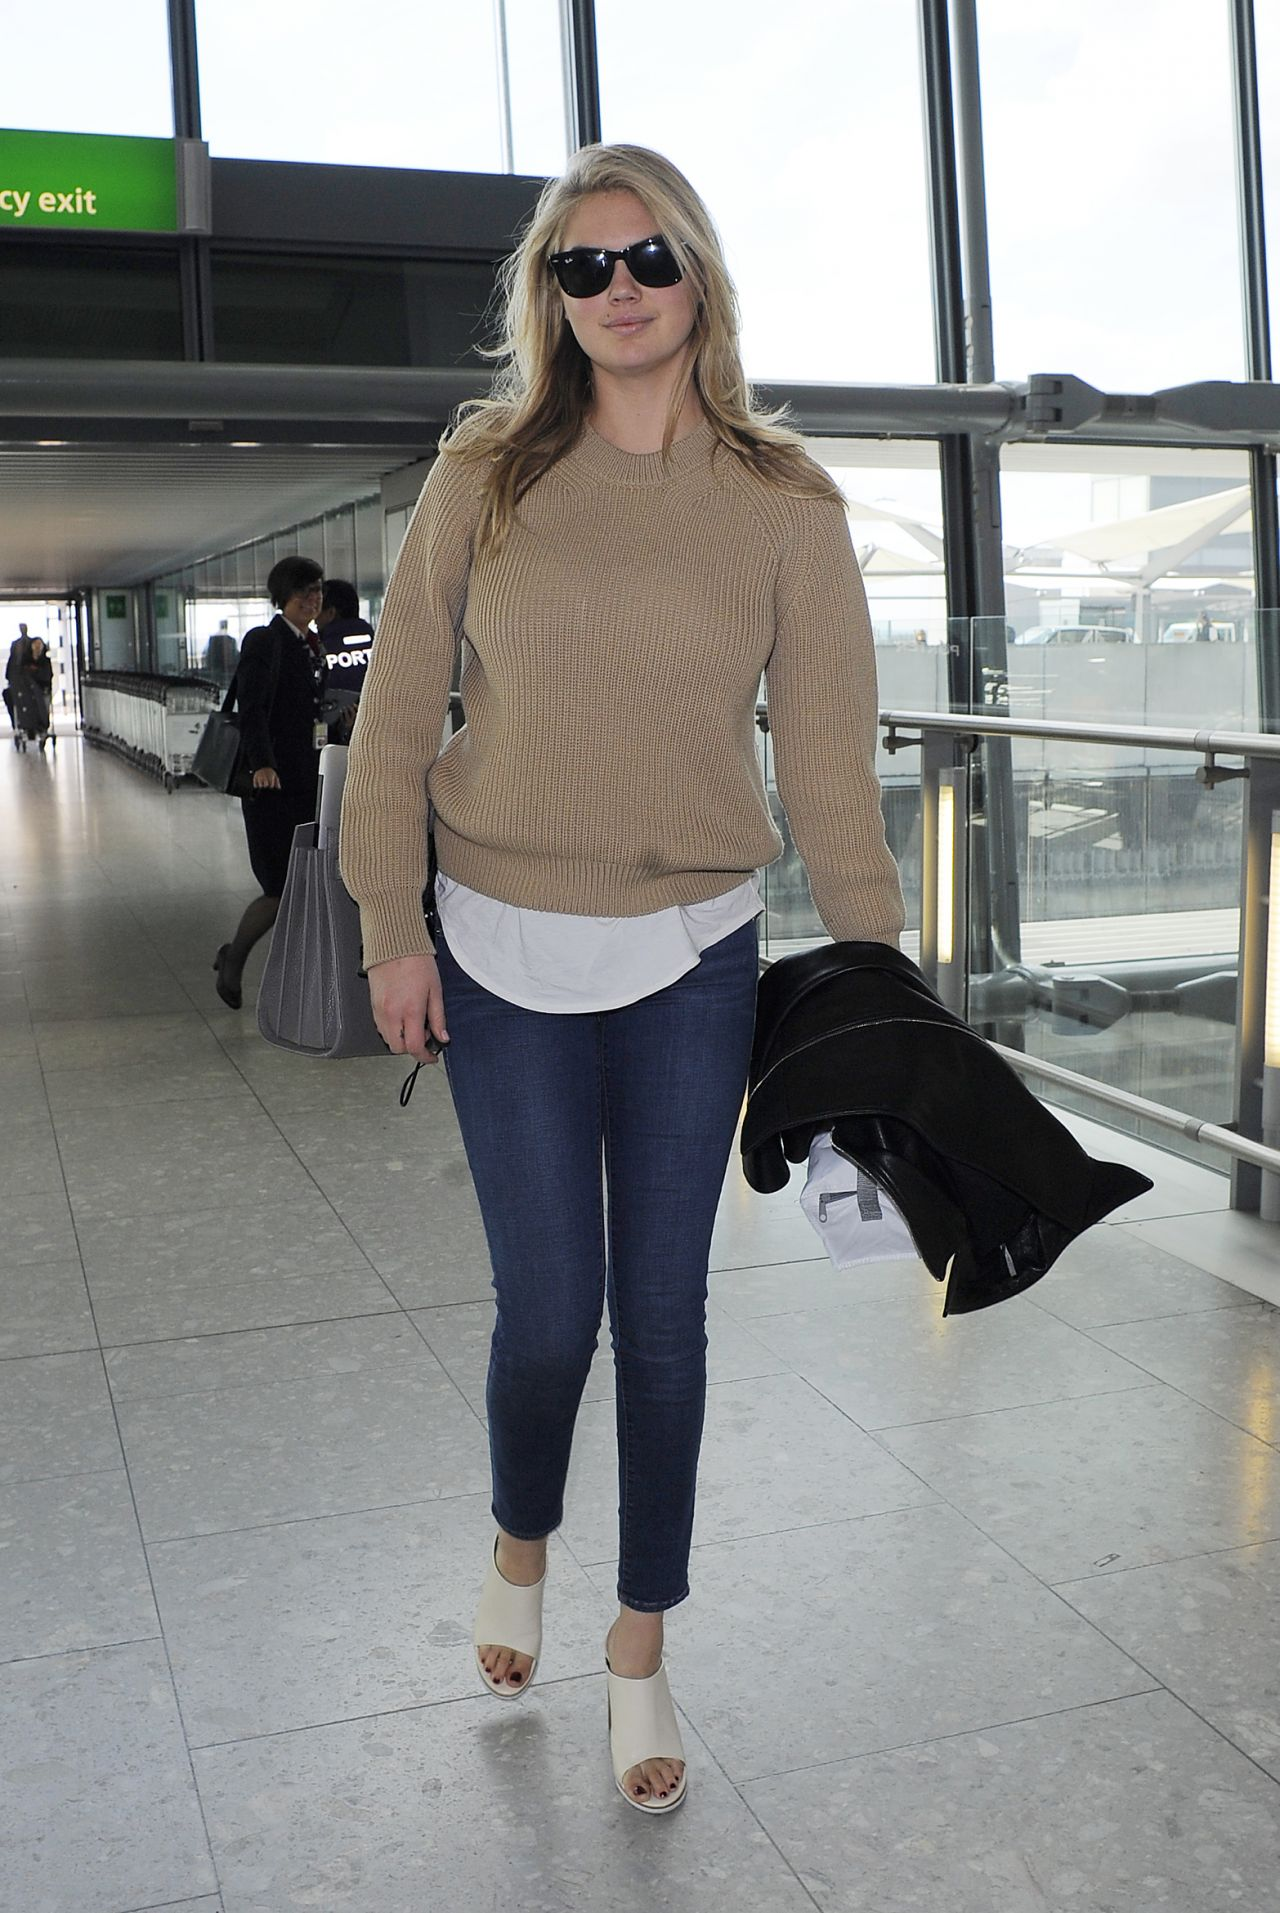 Kate Upton Casual Style  Heathrow Airport in London April 2015